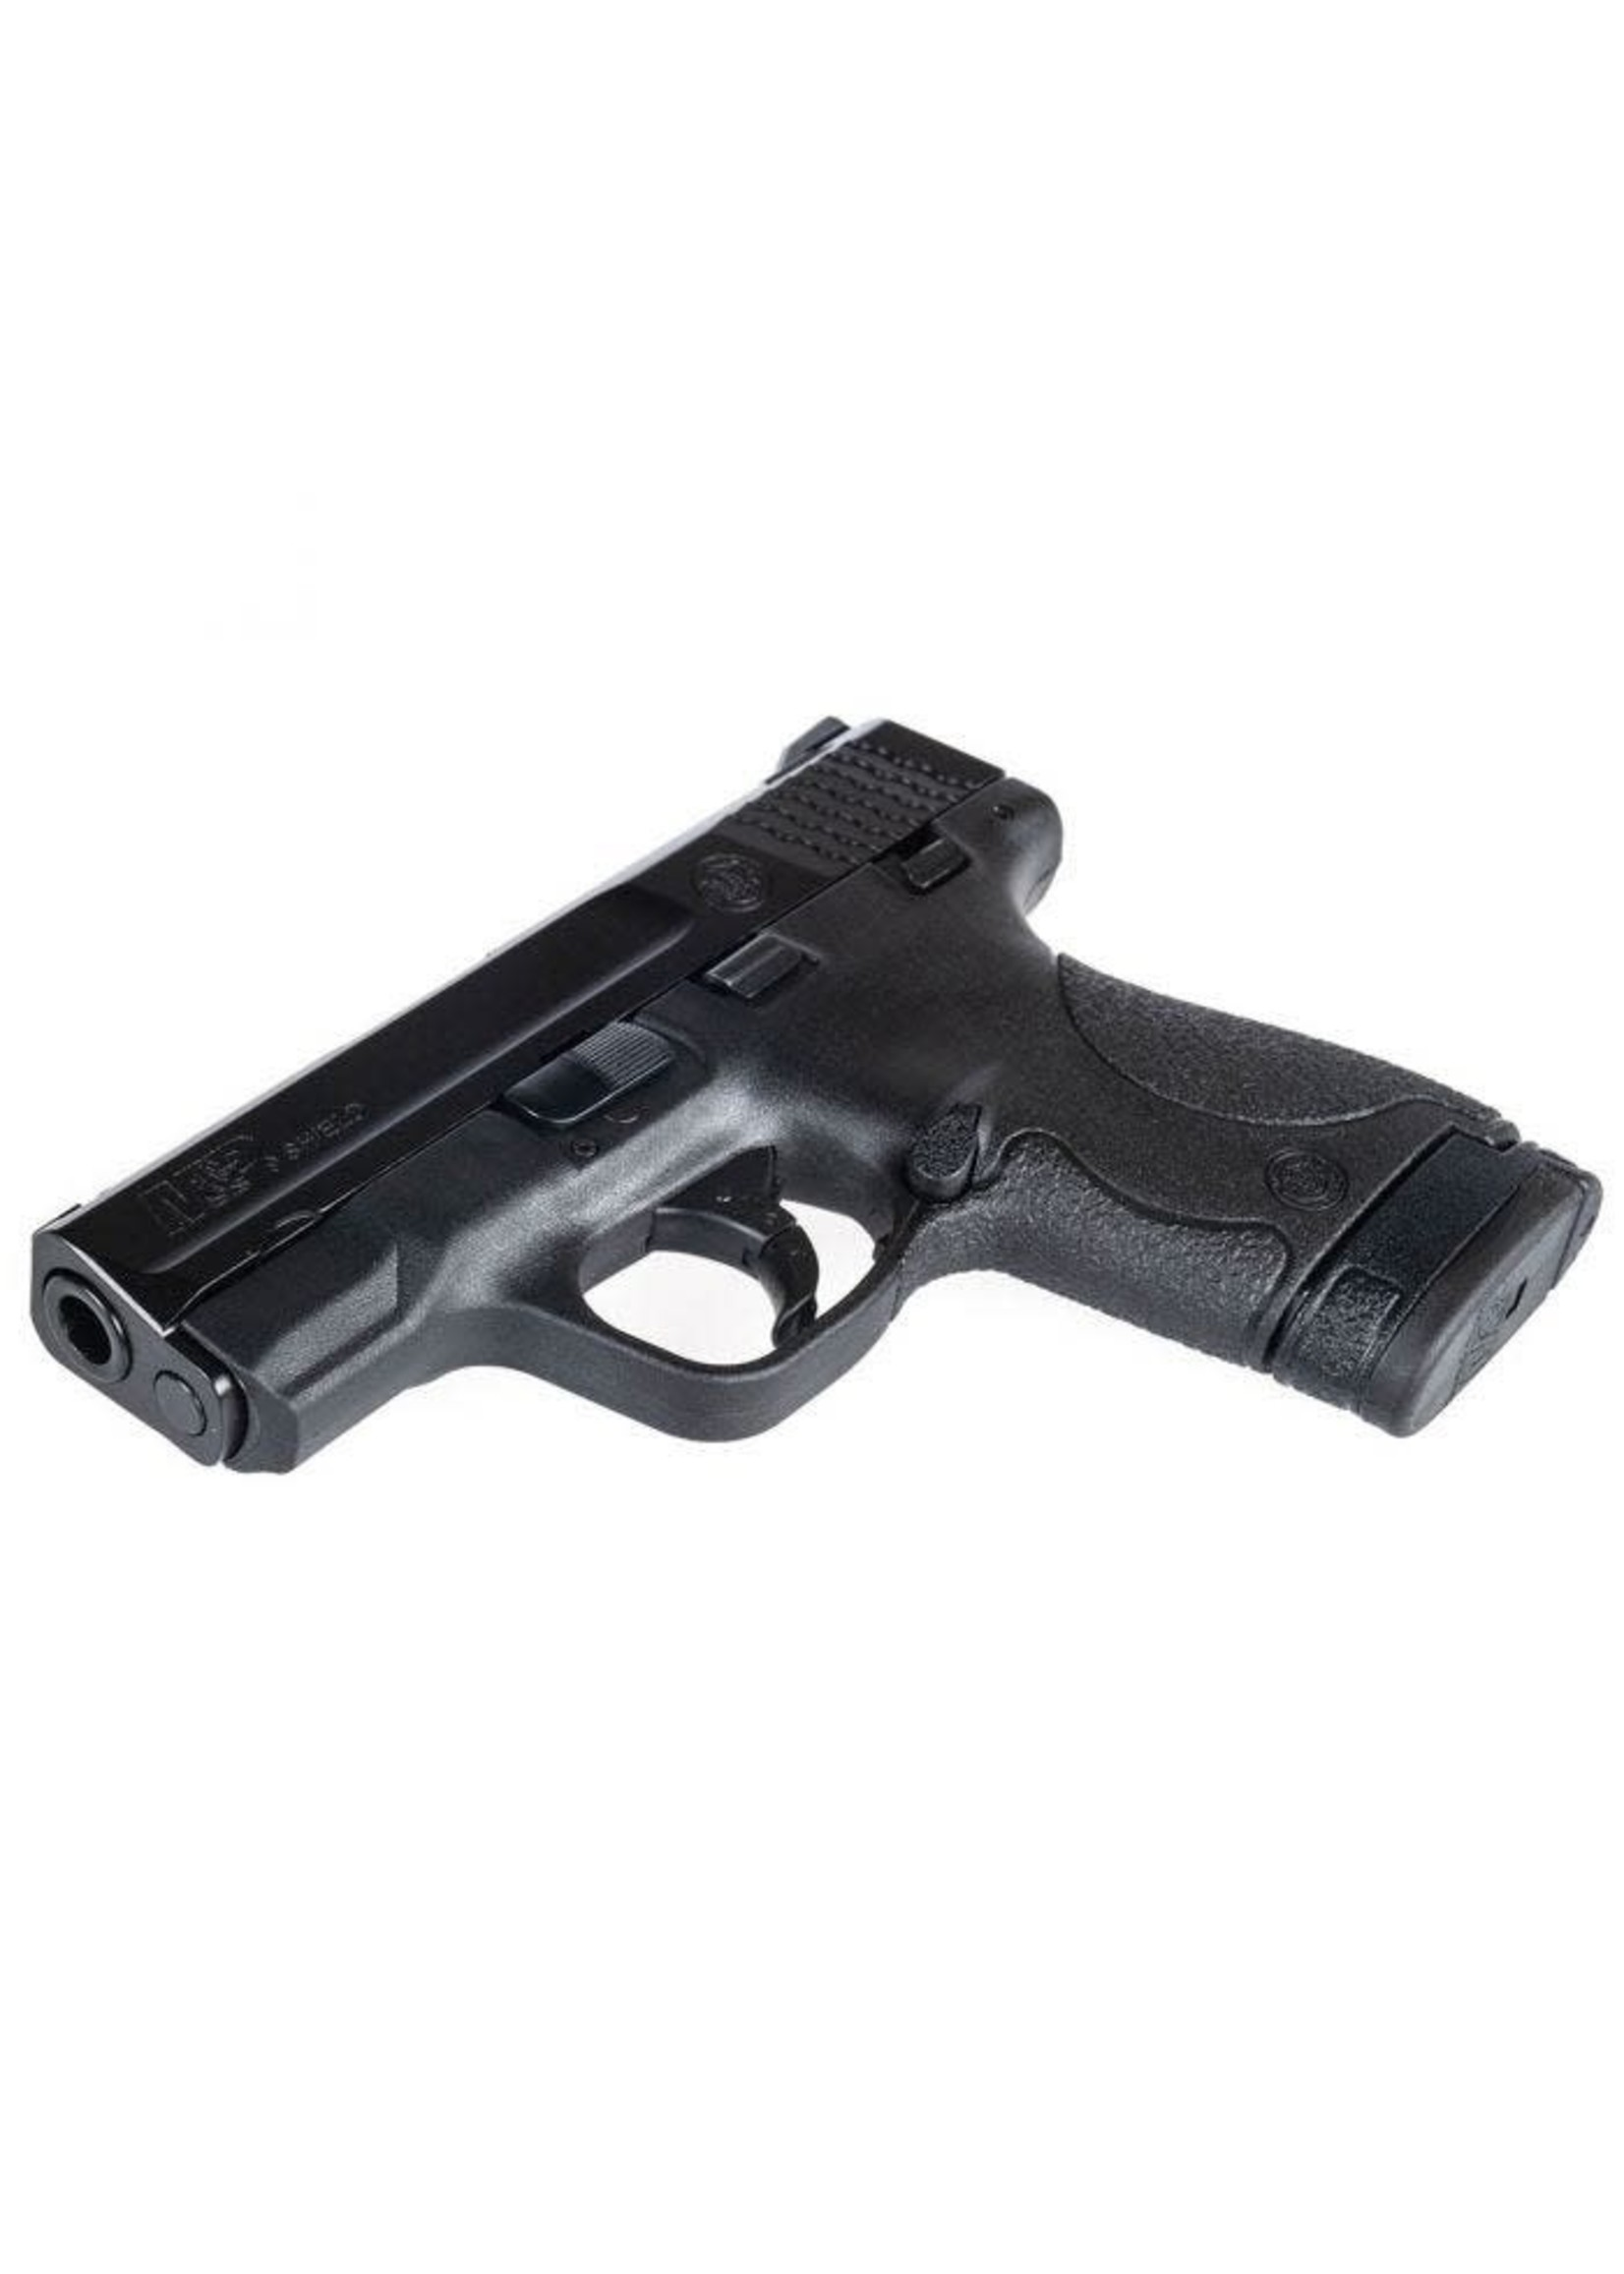 Smith and Wesson (S&W) Smith & Wesson M&P 9 Shield, Pistol, 9mm,  8+1, Manual Safety